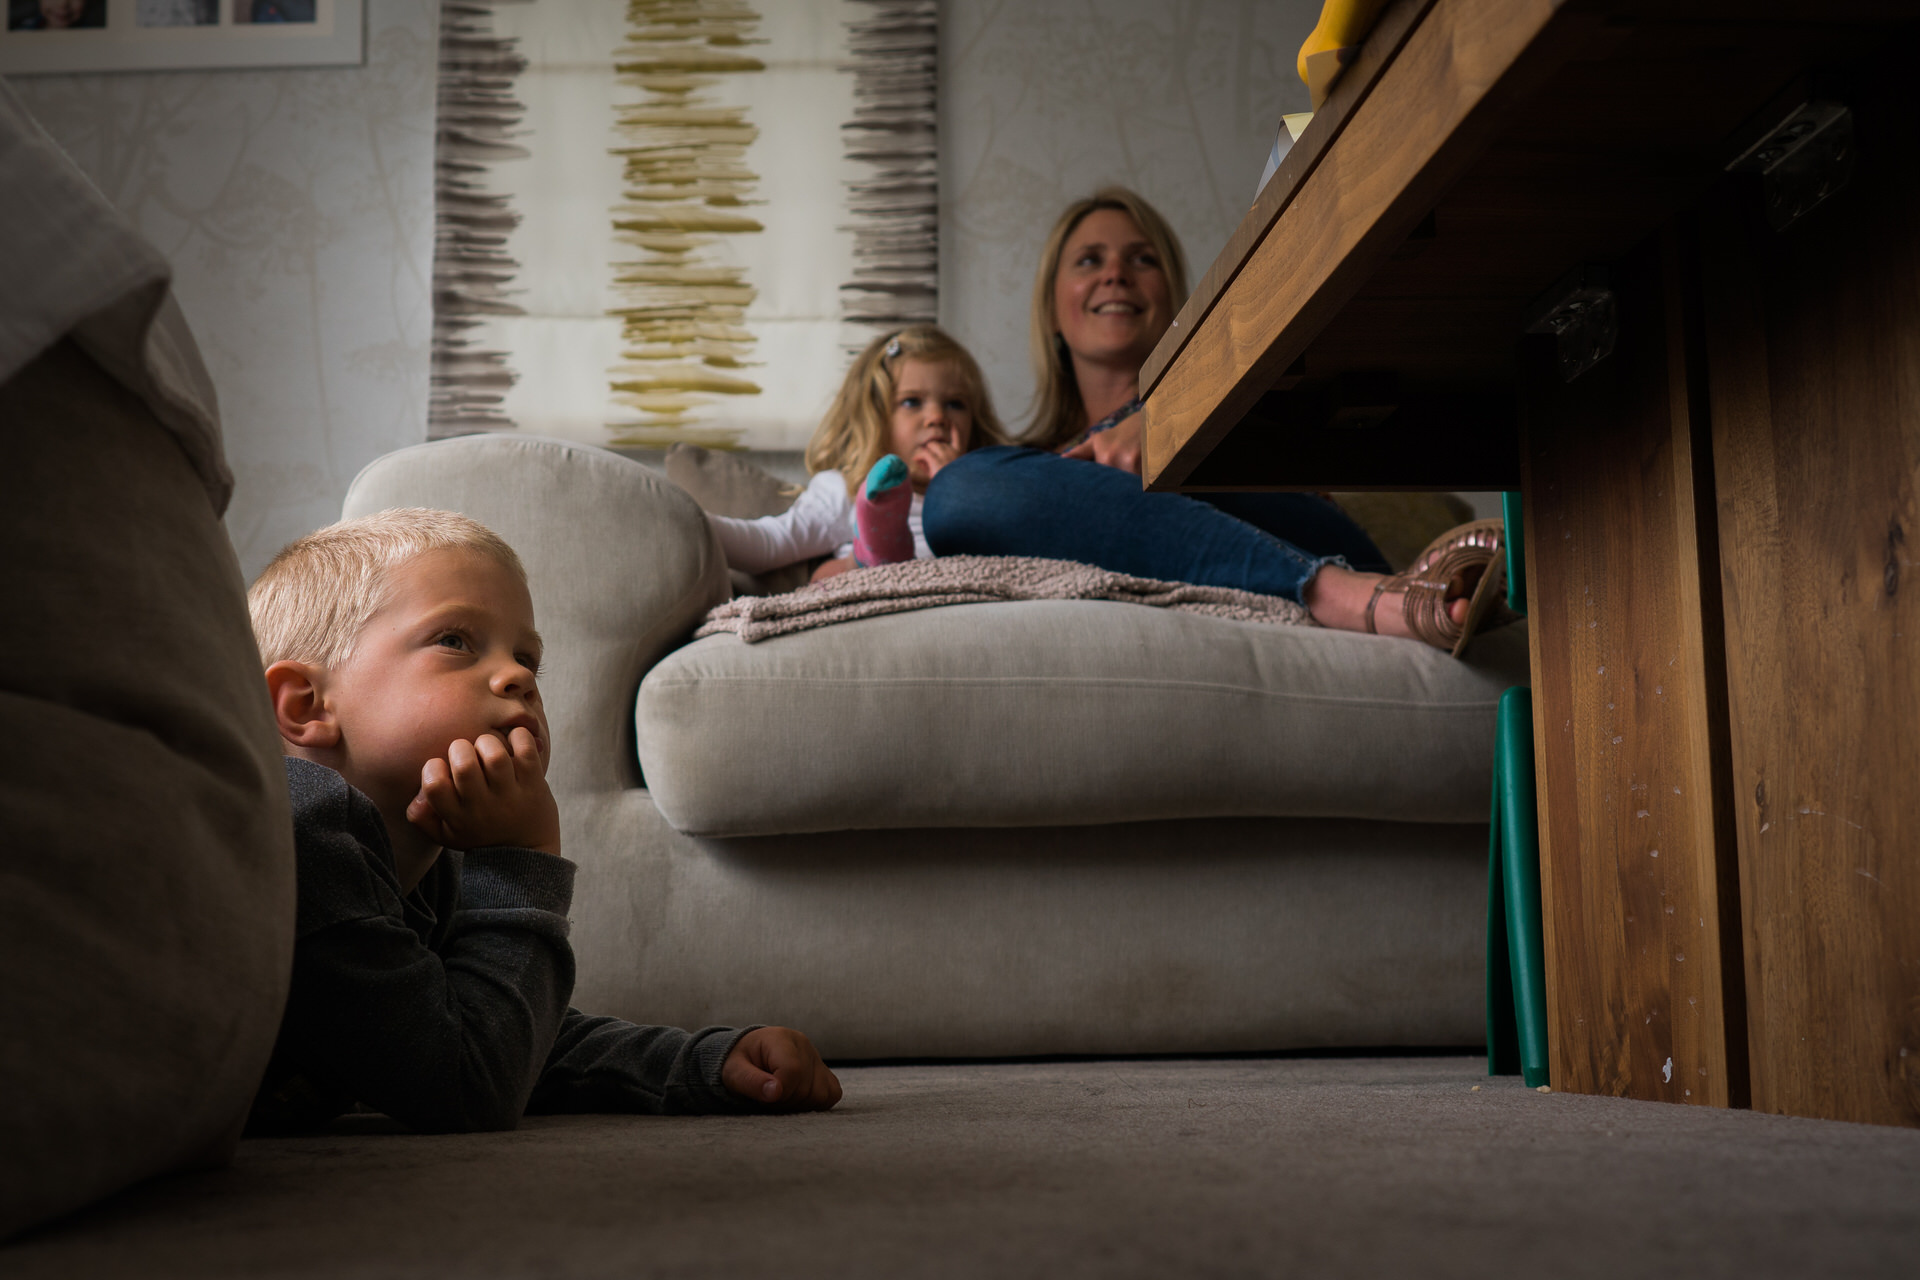 a real life family shot of a mum sitting with children watching TV